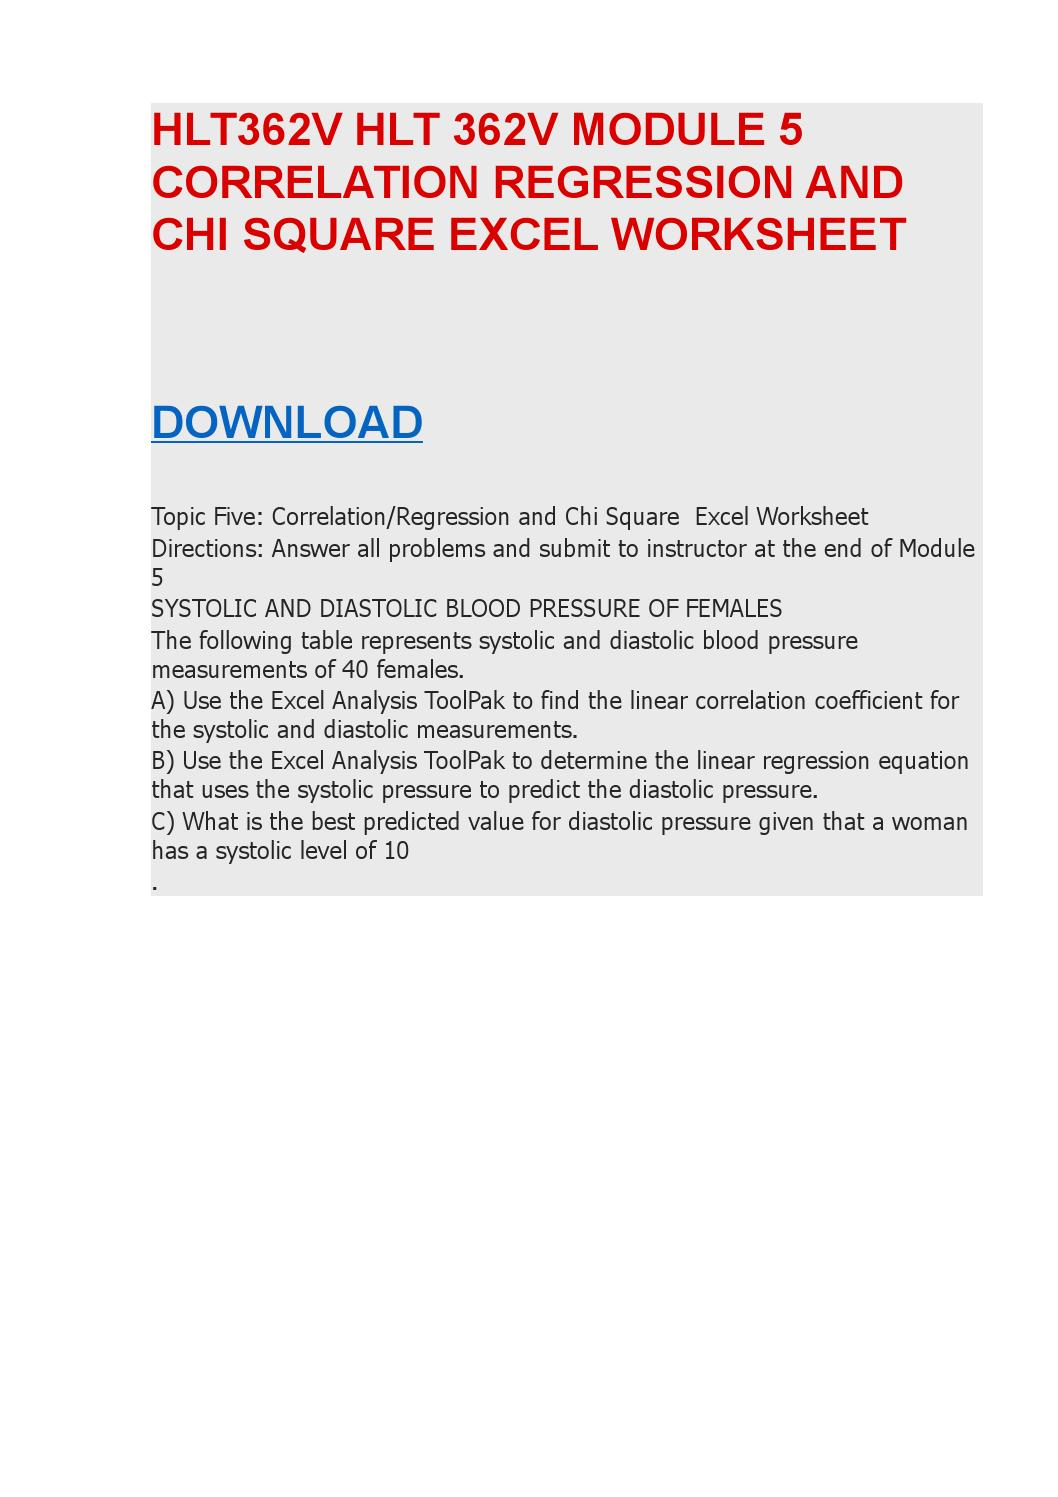 hlt362v hlt 362v module 4 anova excel worksheet by jonieshenon issuu. Black Bedroom Furniture Sets. Home Design Ideas